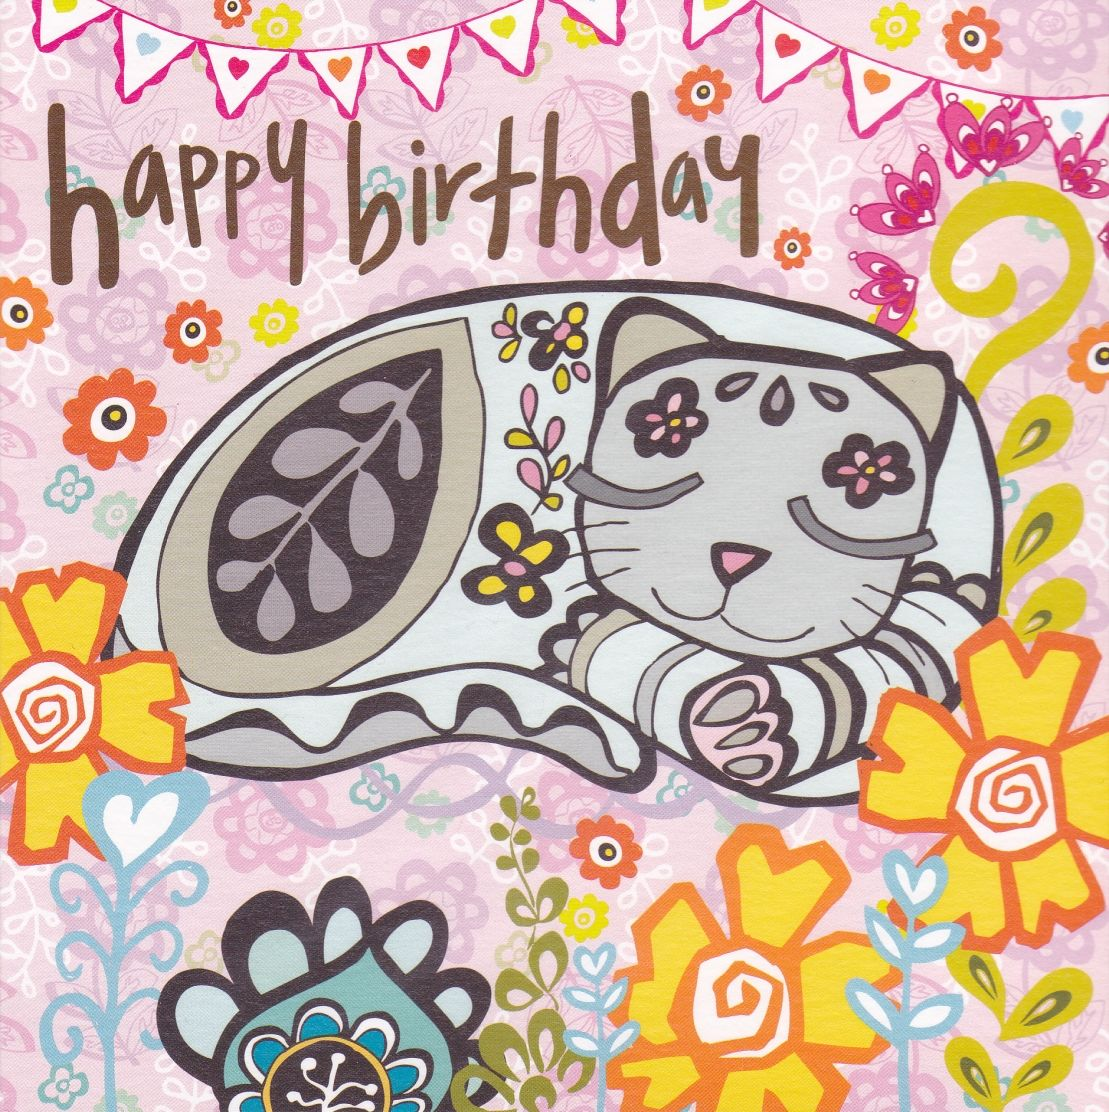 Cat flowers birthday card karenza paperie cat flowers birthday card izmirmasajfo